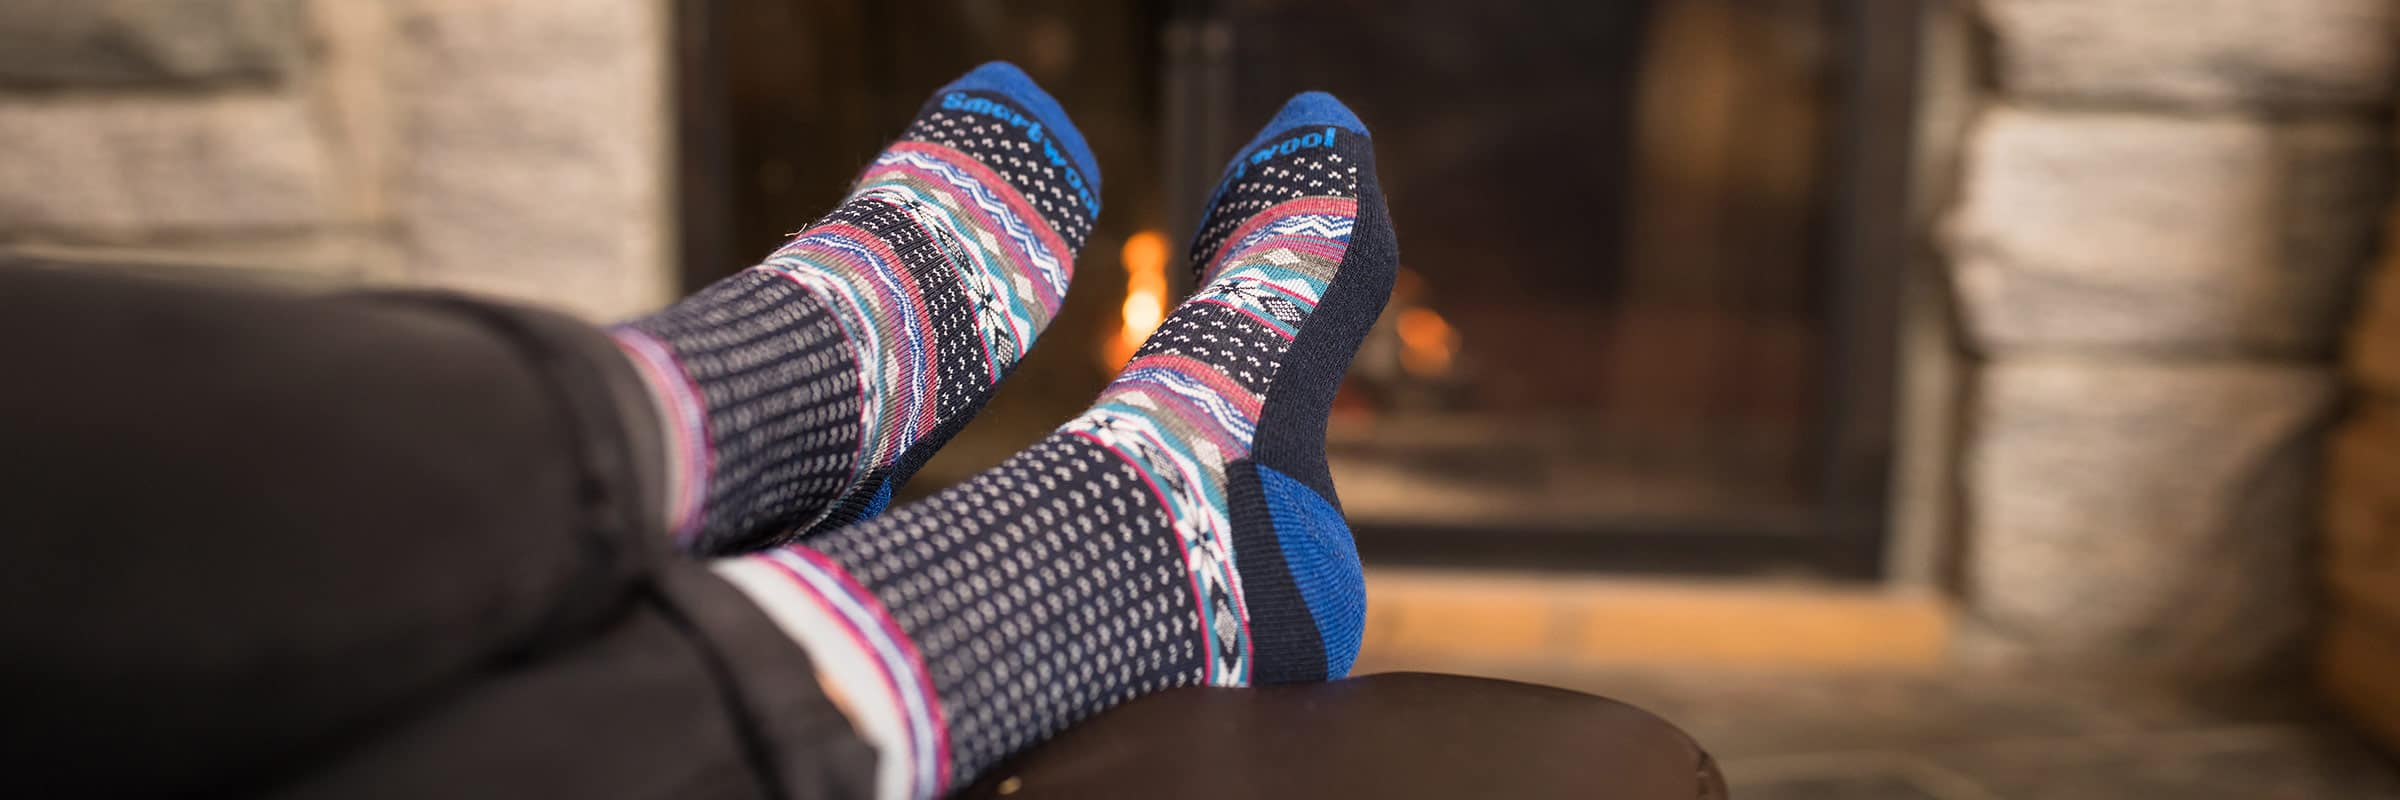 Christmas Socks Gift Guide 2019